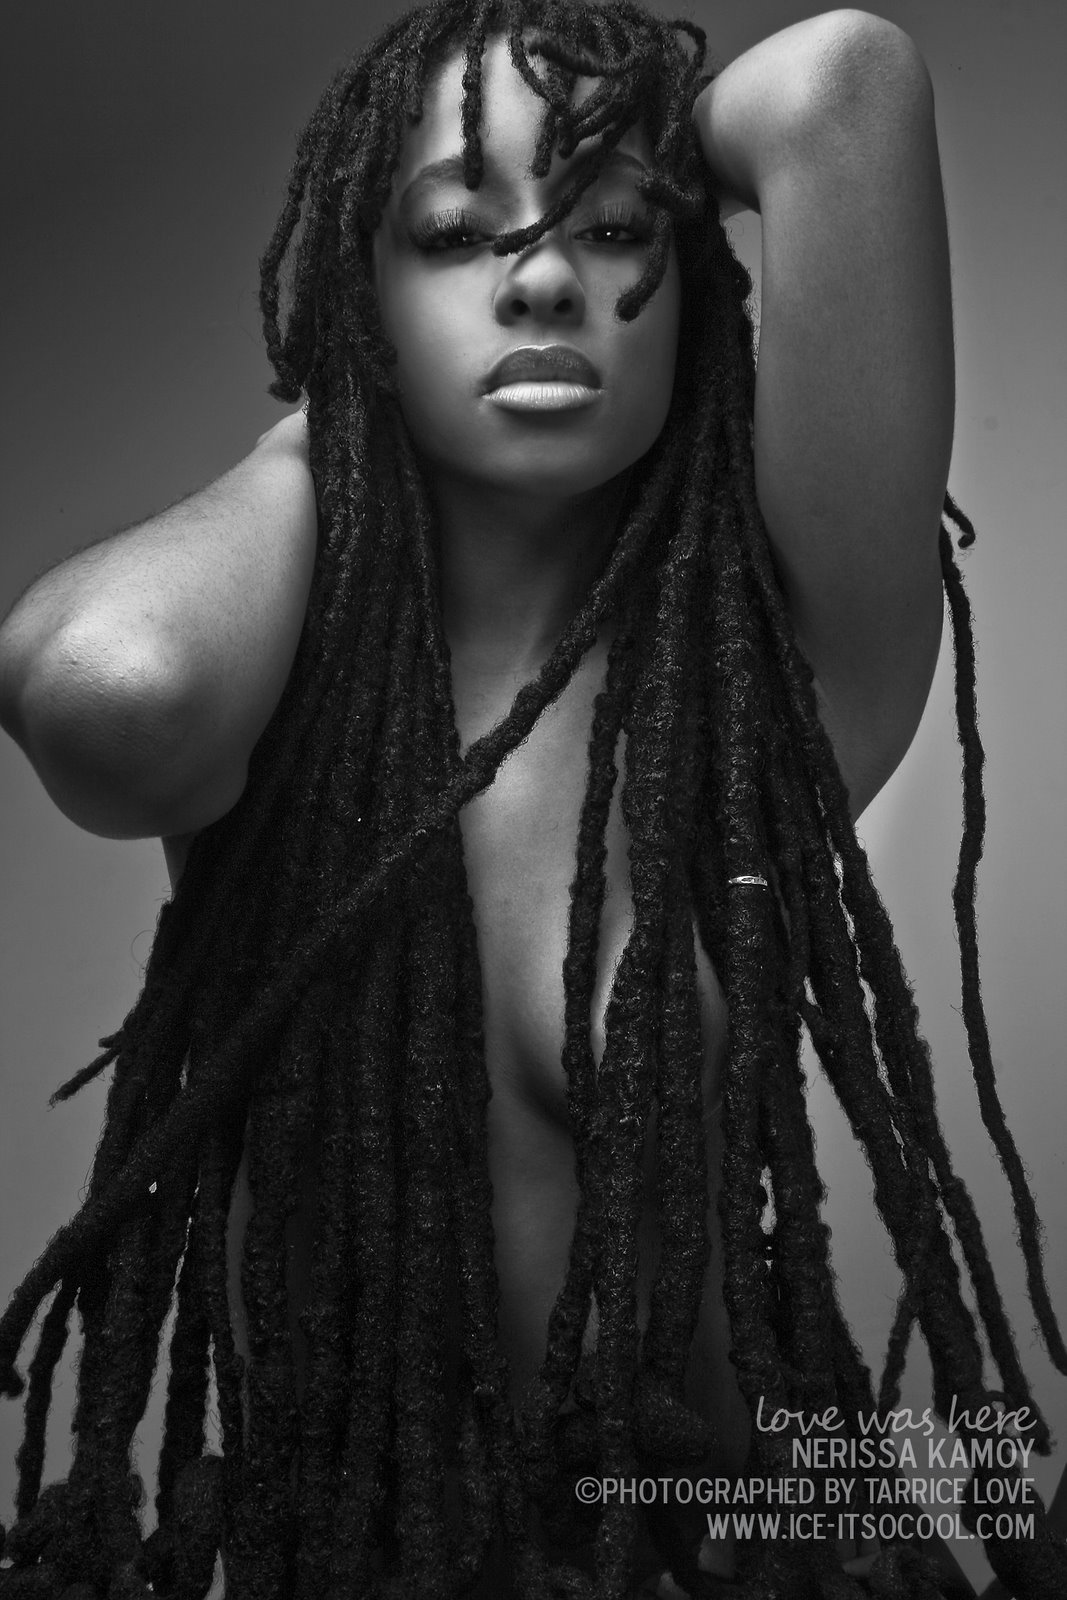 Sexy naked black girls with dreads